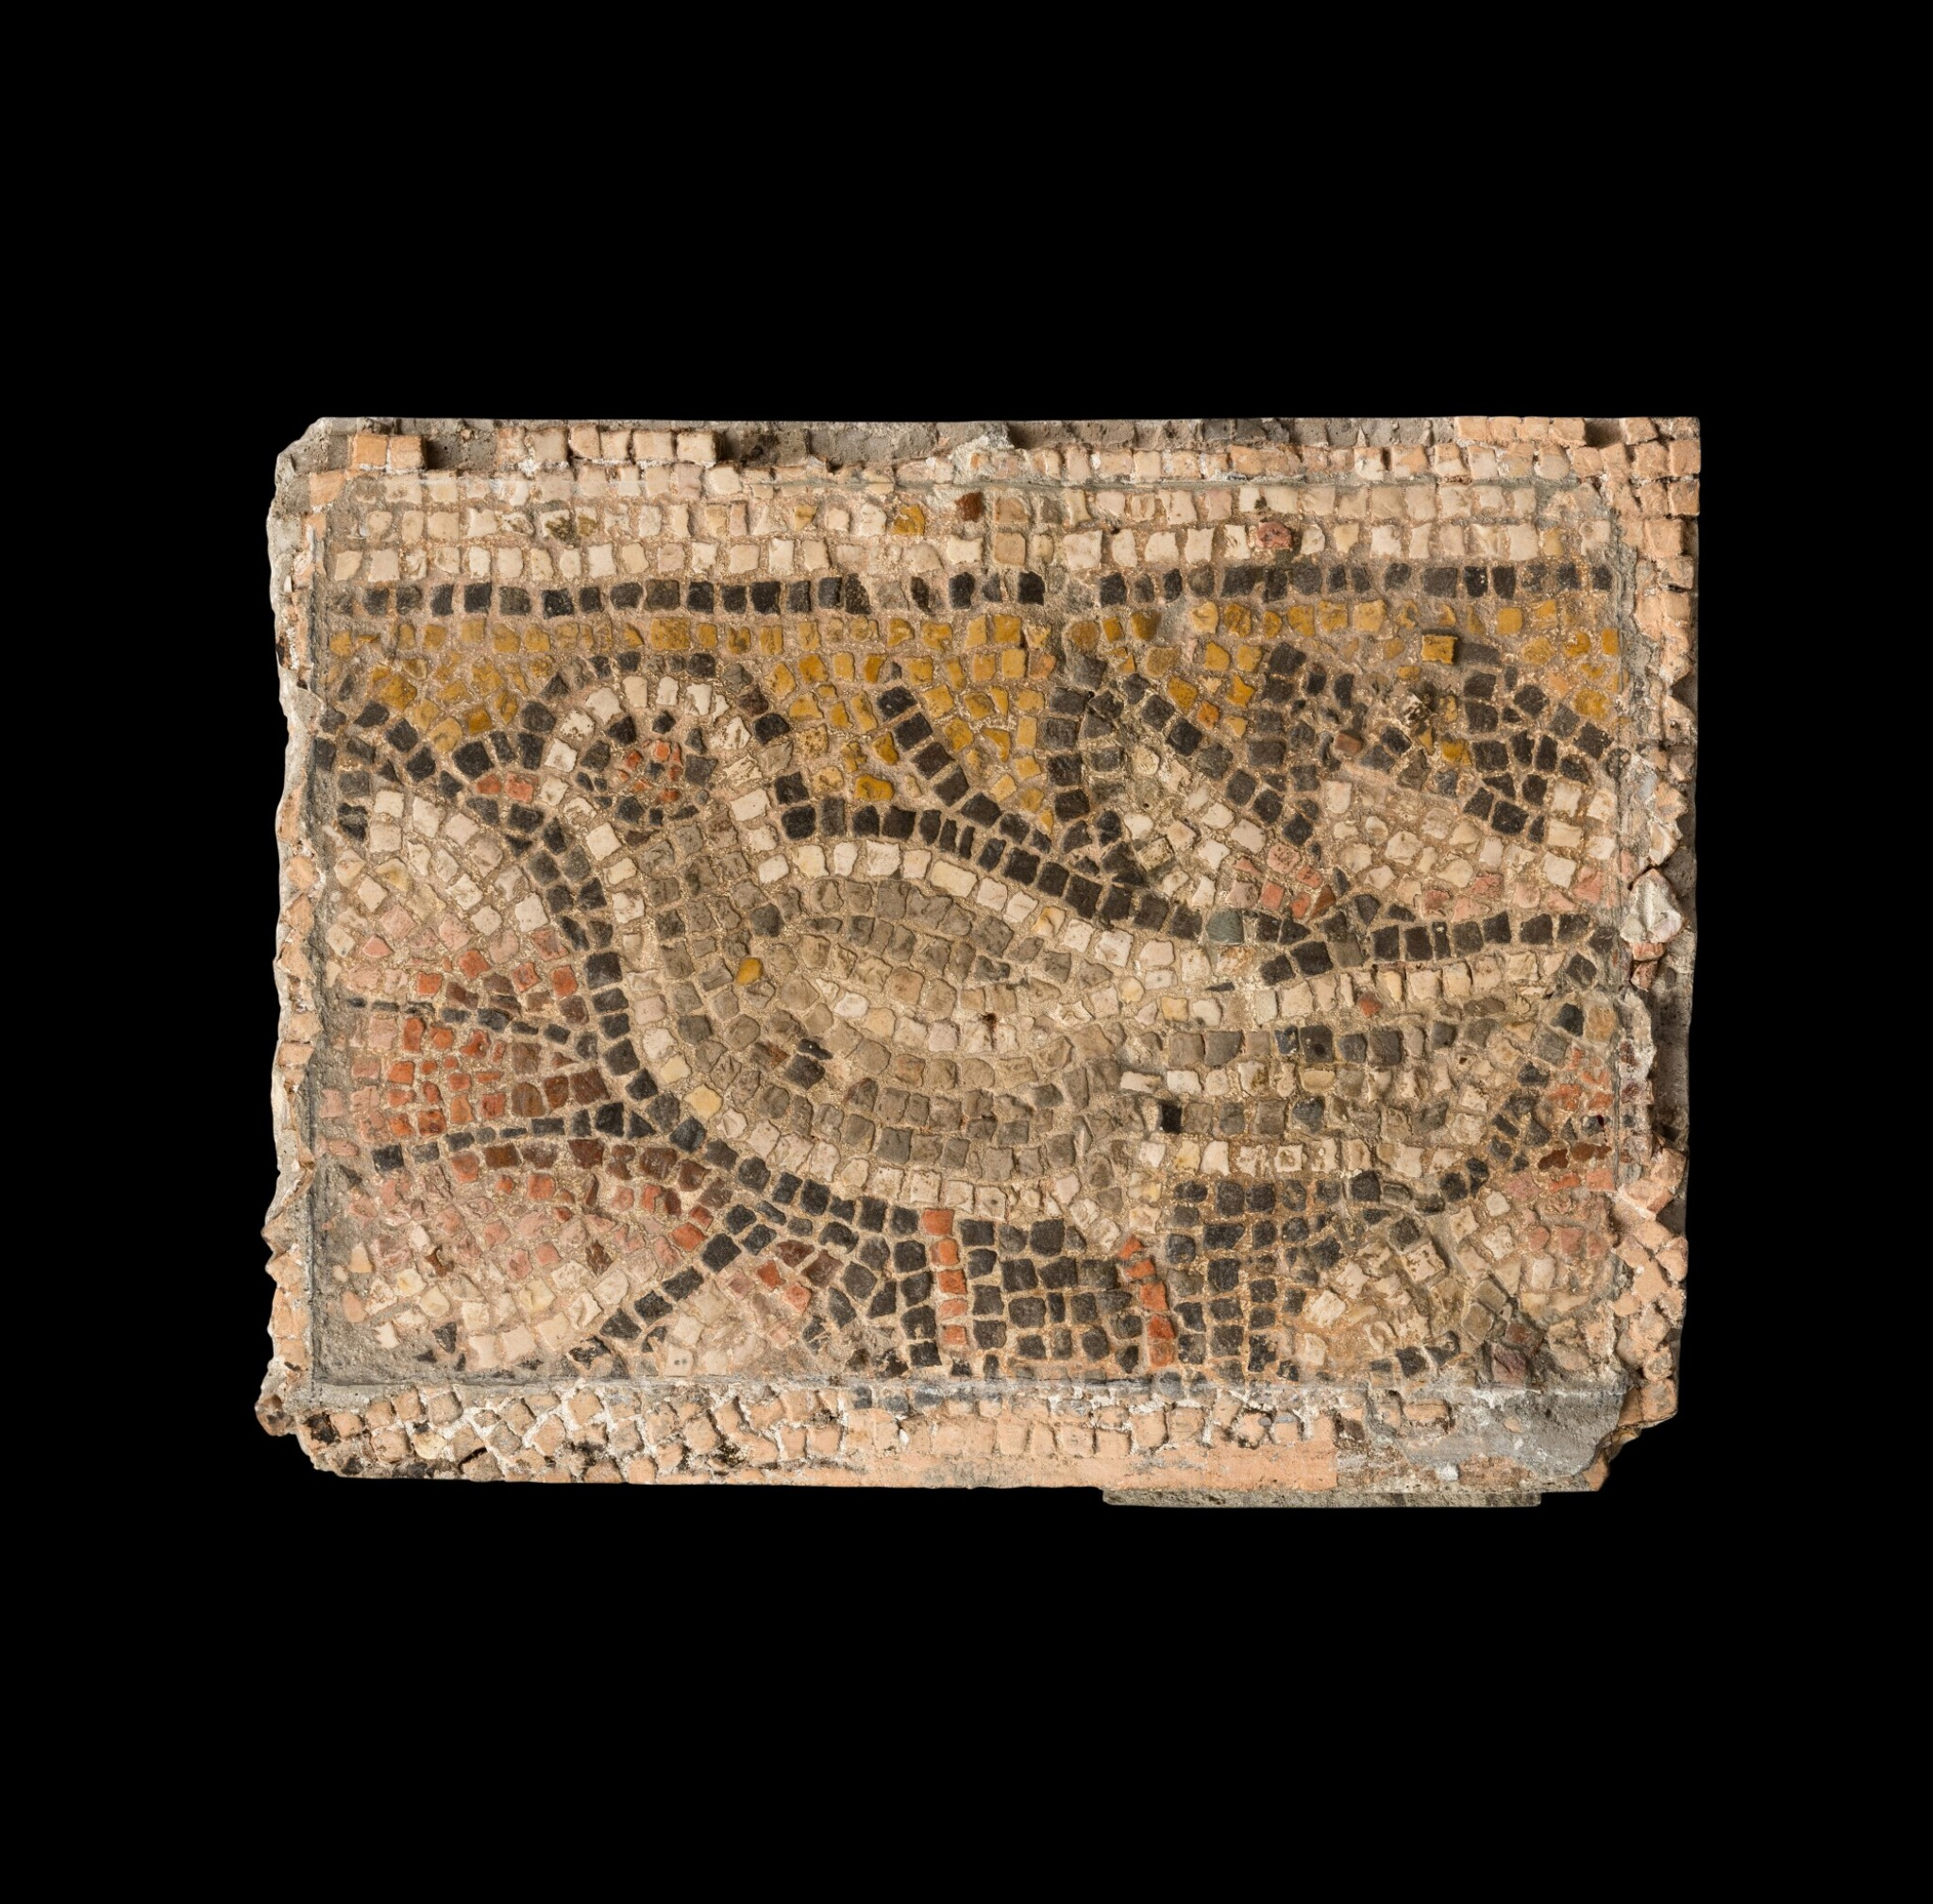 View 1 of Lot 110. A Byzantine Mosaic Fragment, circa 4th/5th Century A.D..